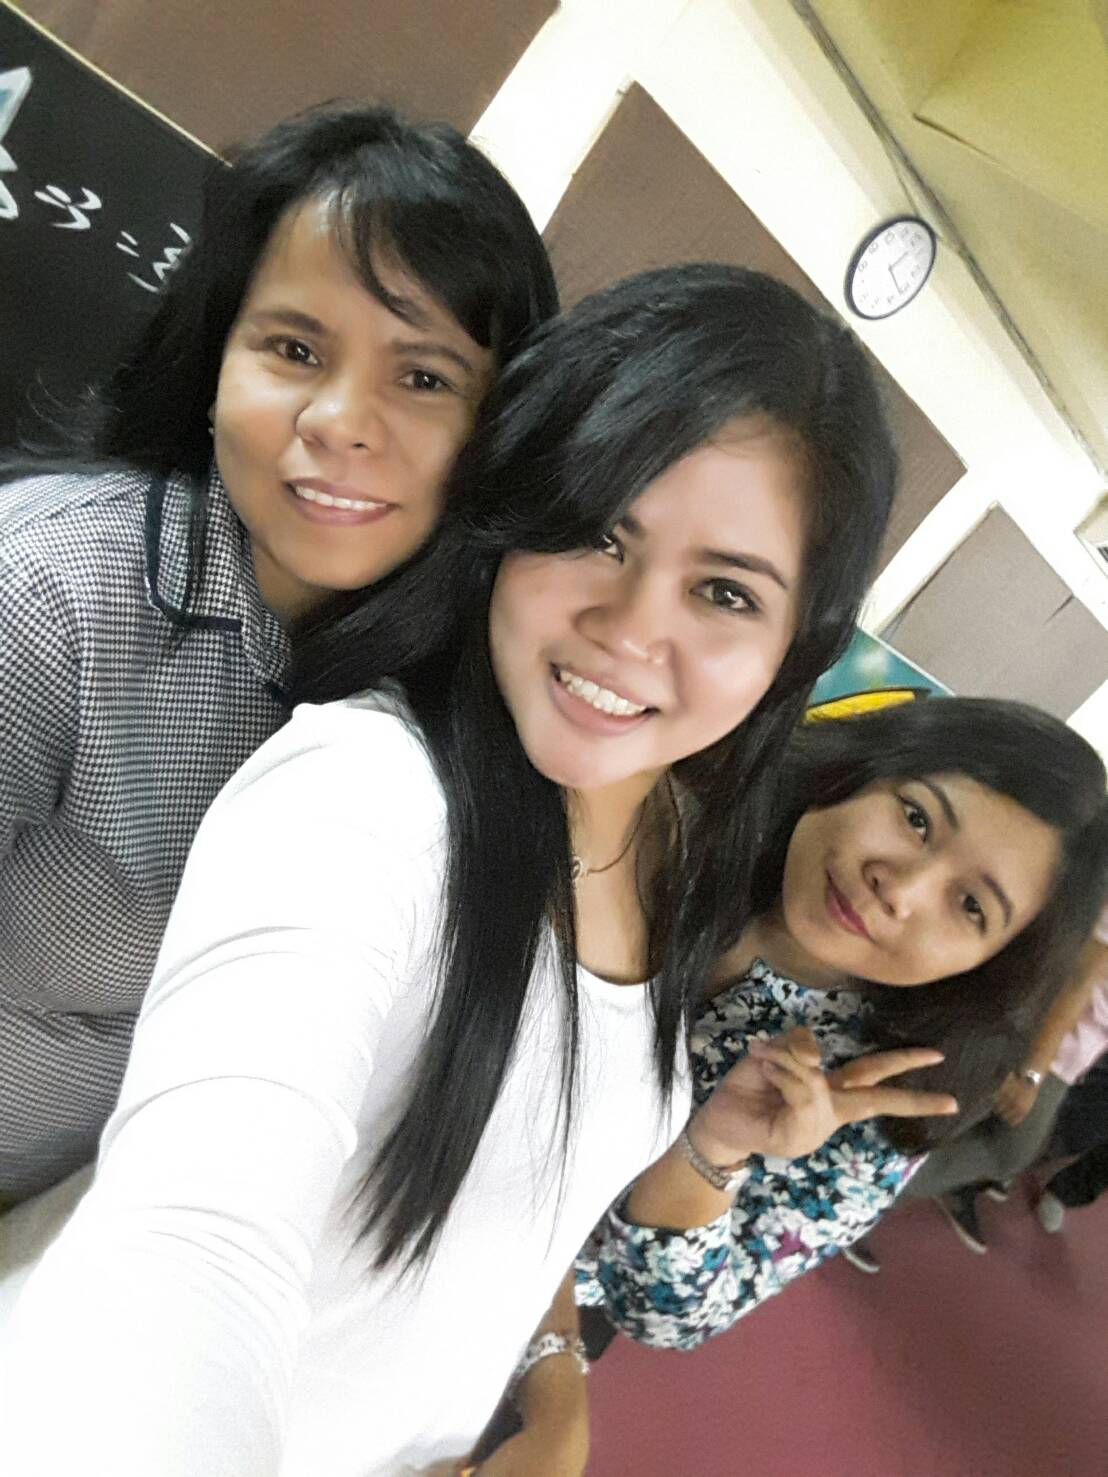 After Church